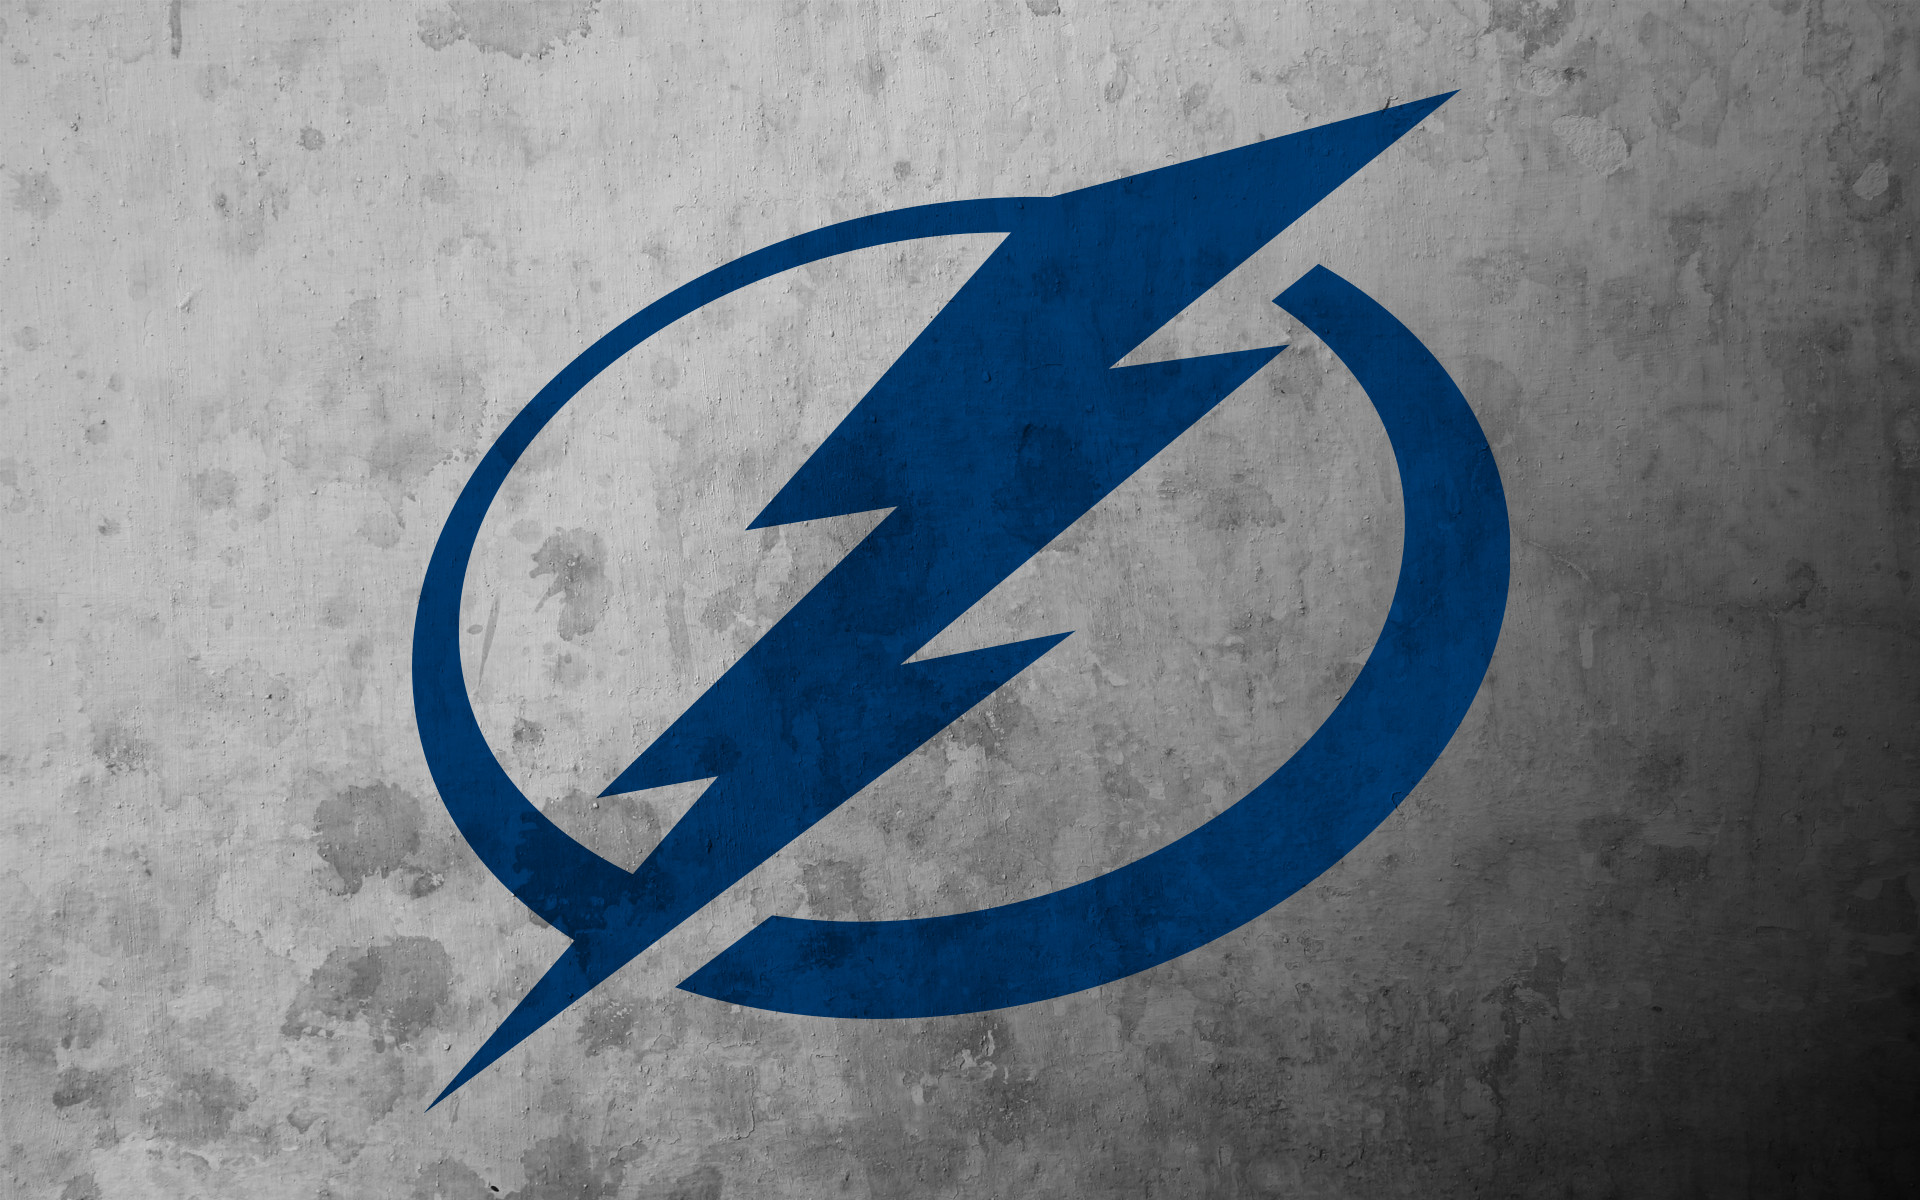 1920x1200 Psychedelic IPhone Wallpapers · Tampa Bay Lightning Wallpaper 2015 ...